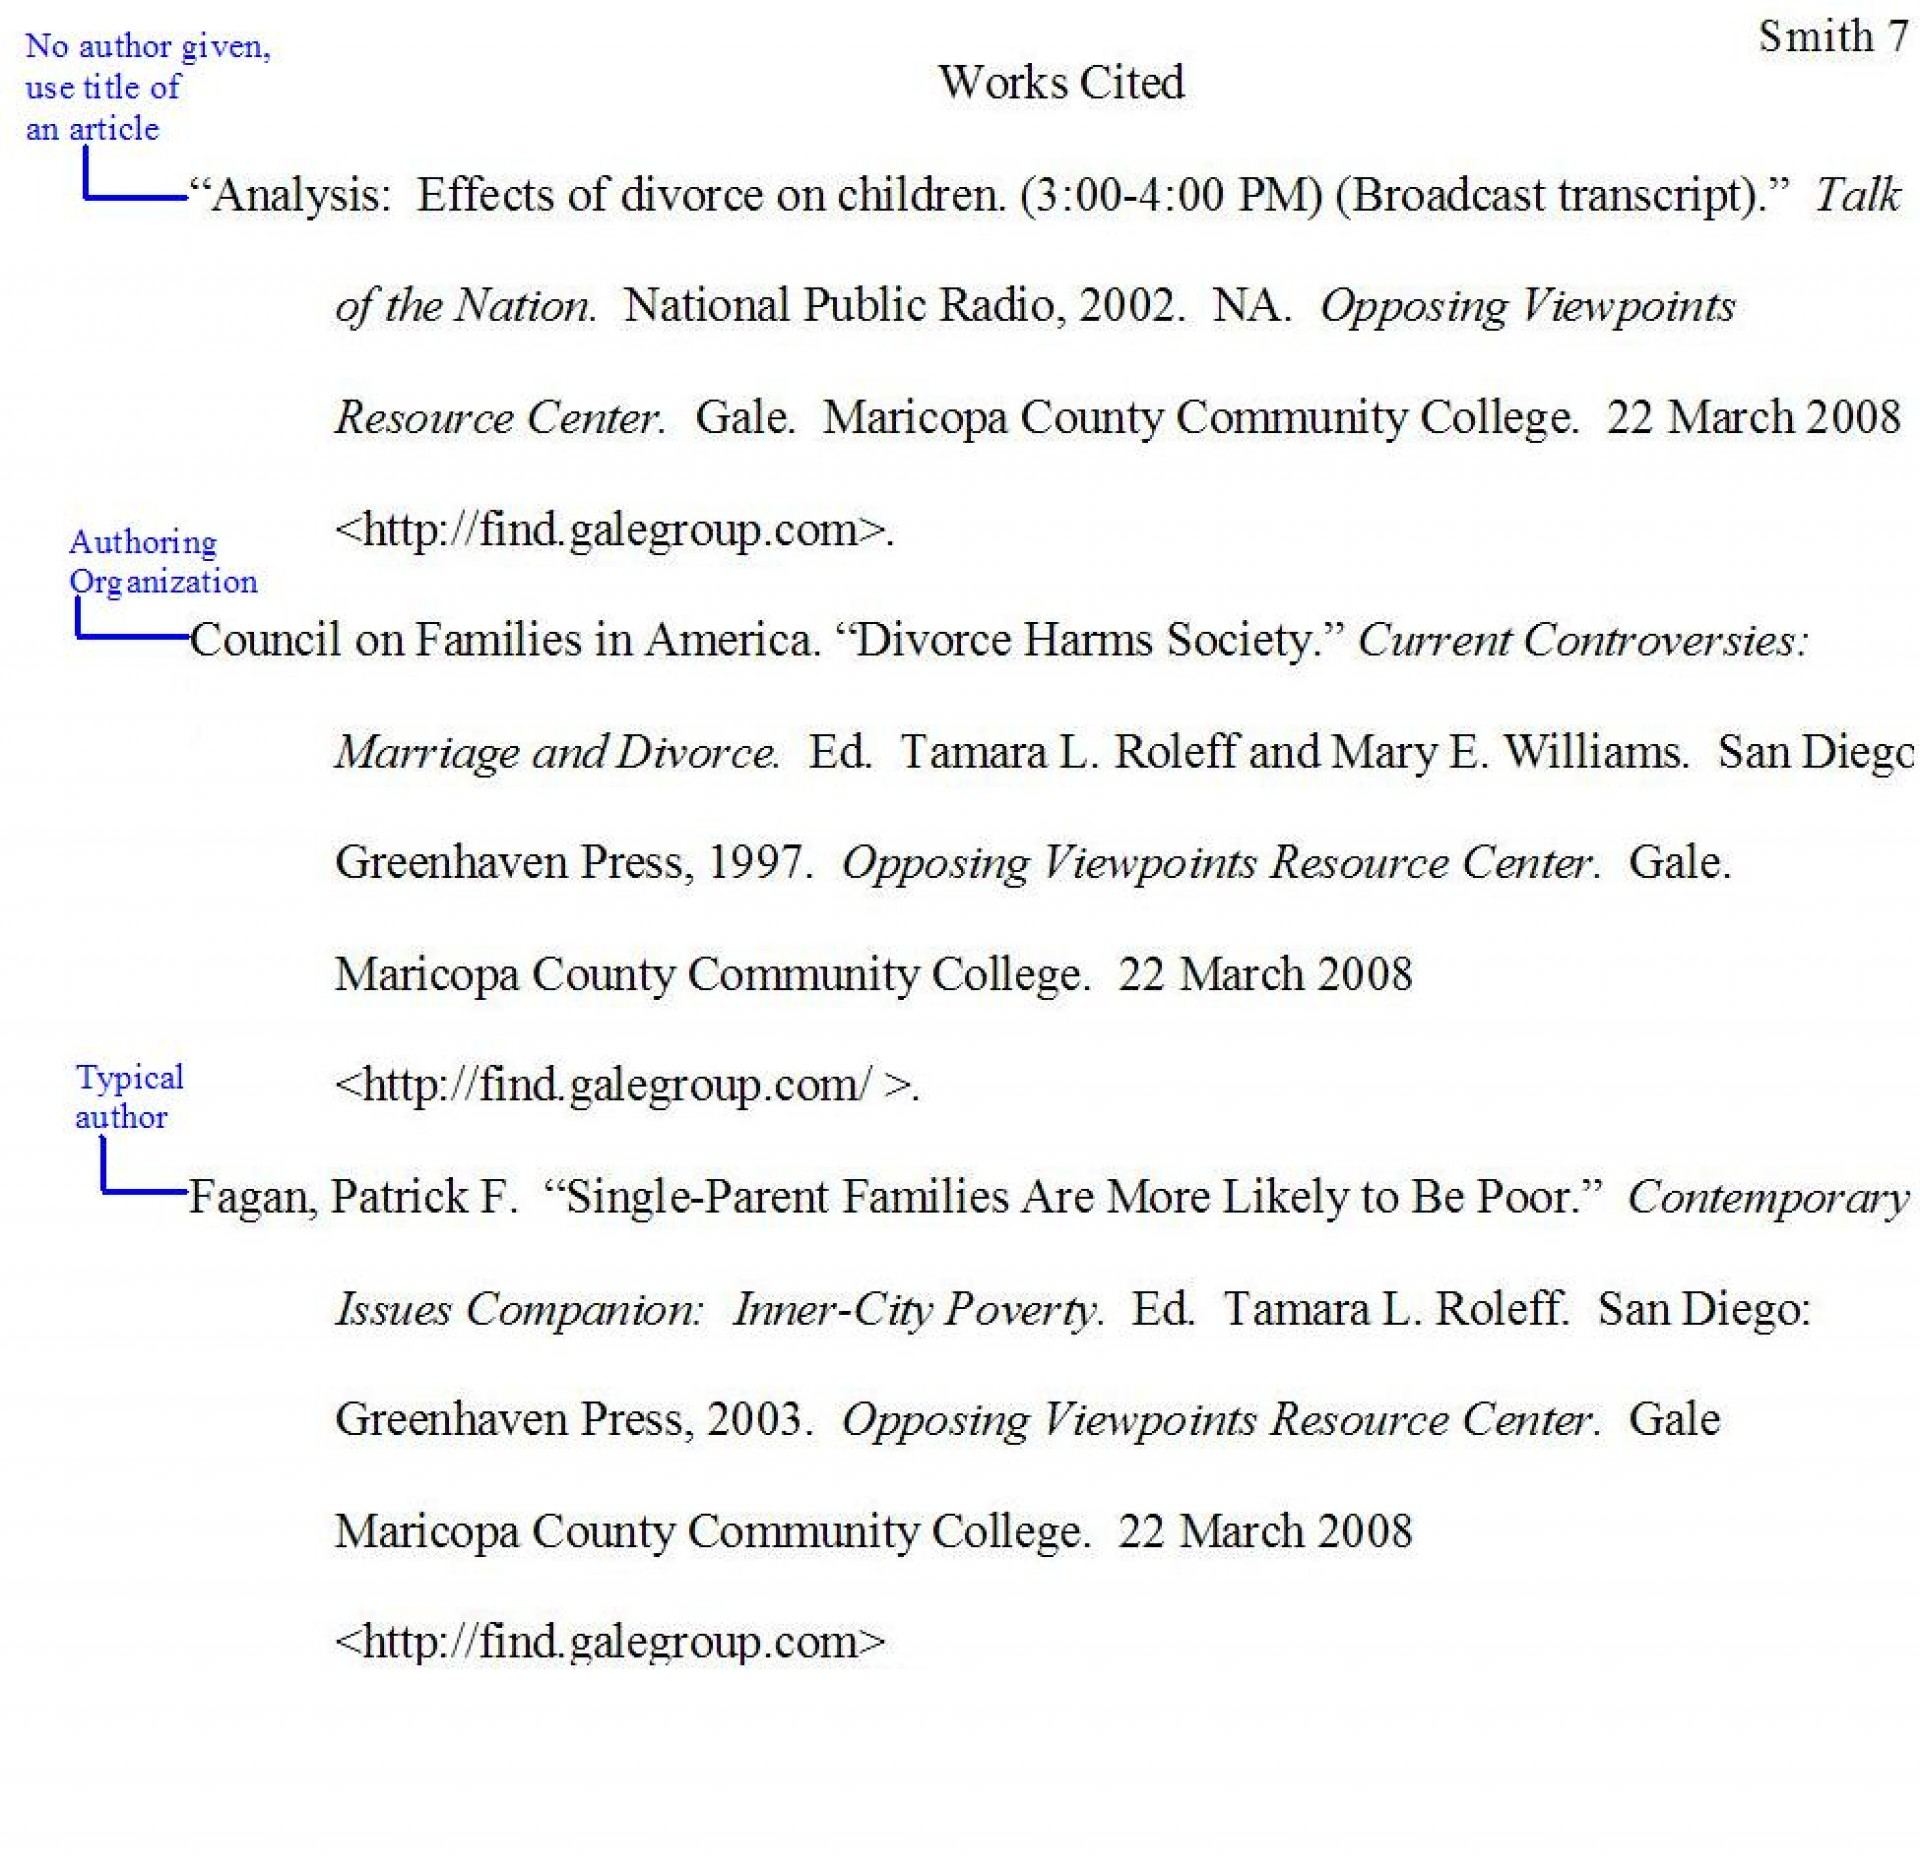 010 Format For Research Paper References Samplewrkctd Awesome Example Of Citation Mla In Text Citations Apa Style 1920